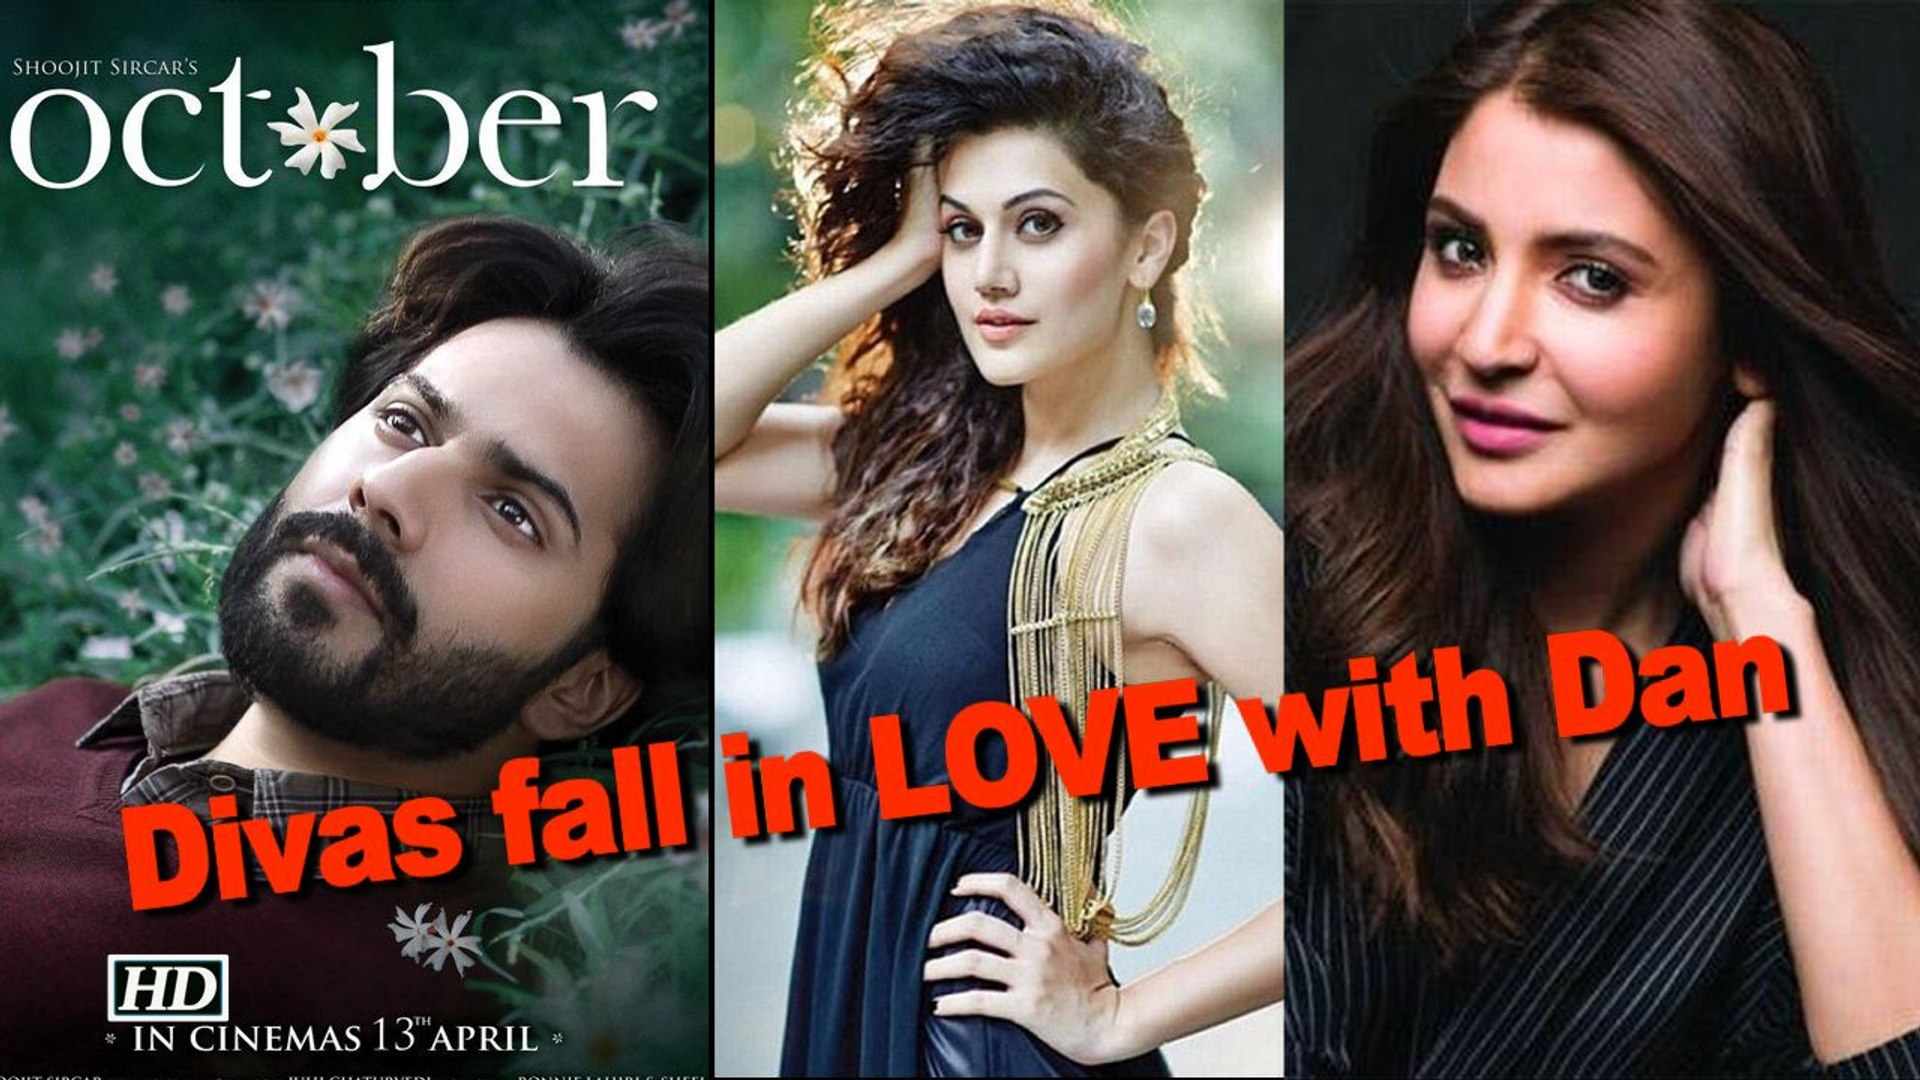 Divas fall in LOVE with Dan | October Review